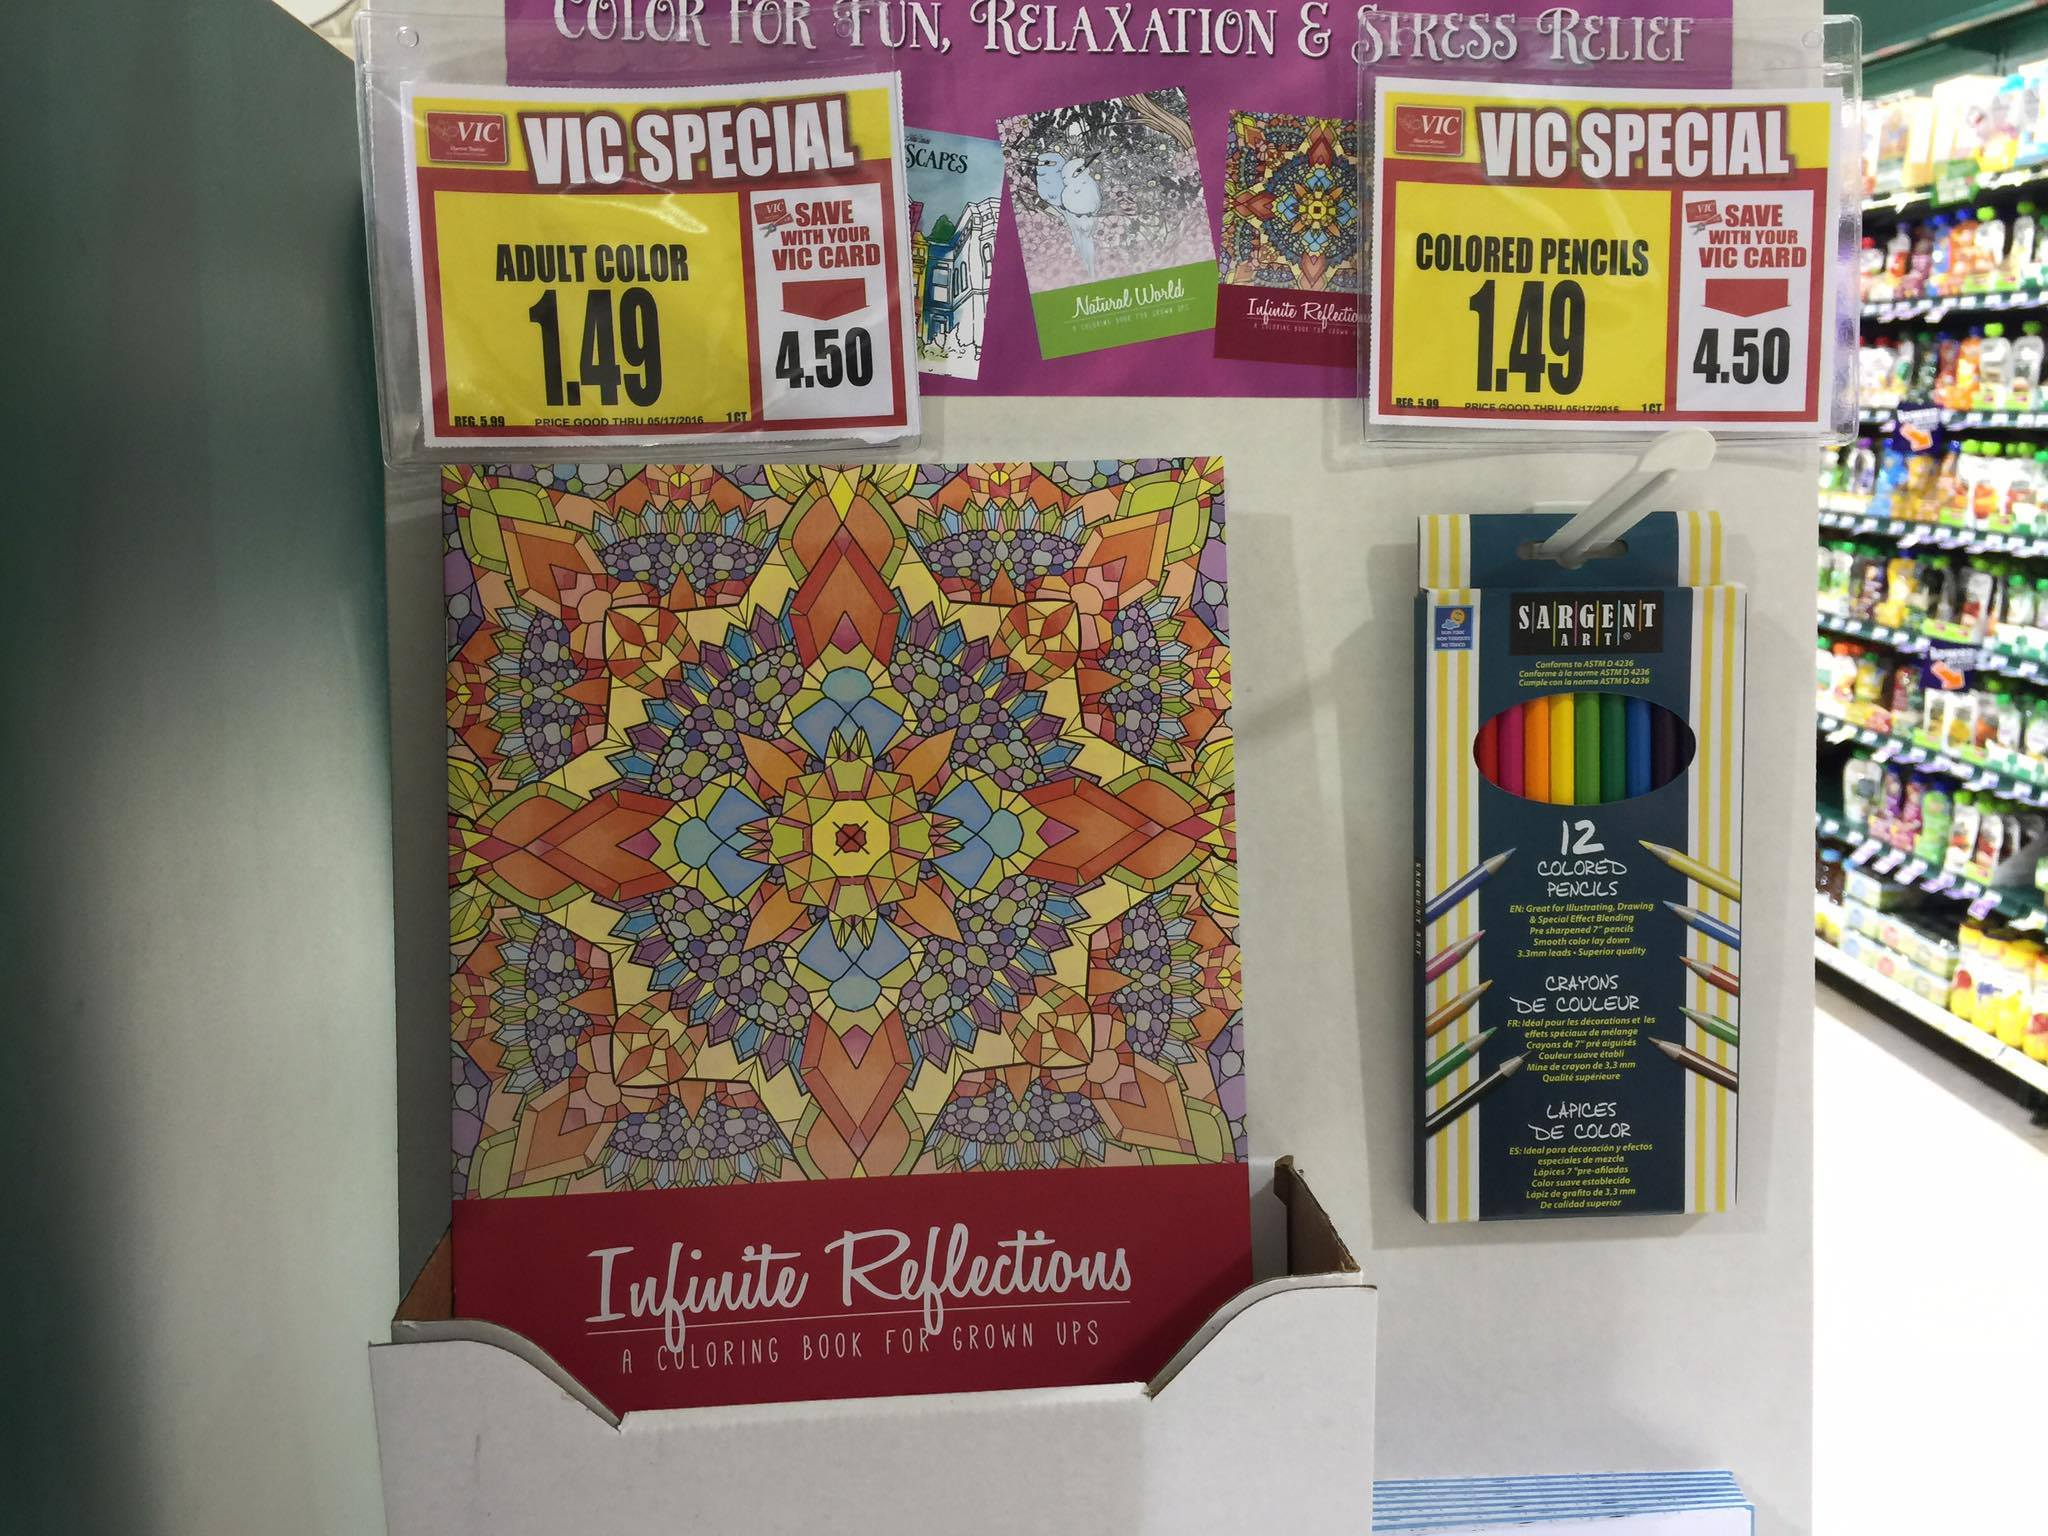 adult coloring books colored pencils usd149 the harris teeter dollar tree - Dollar Tree Coloring Books